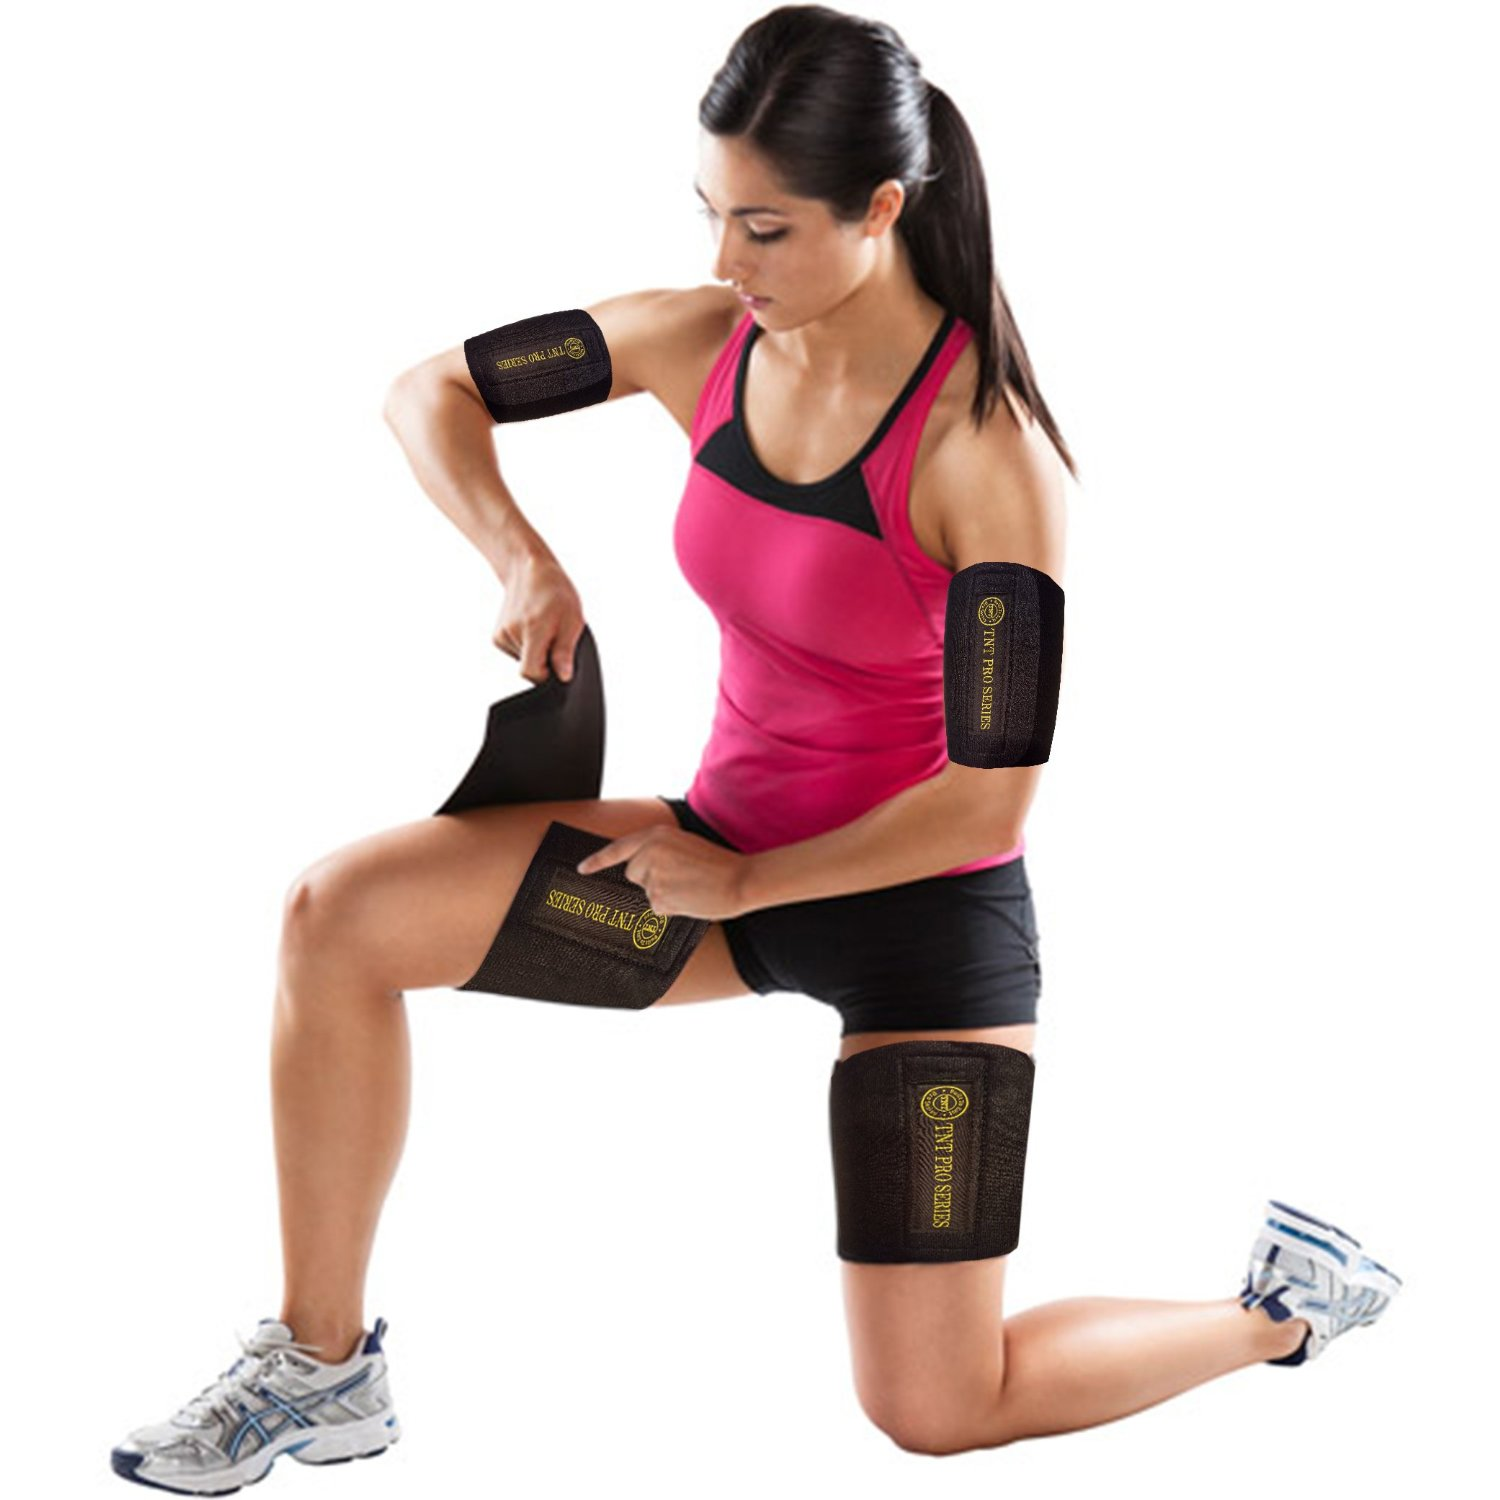 80f2526c32 TNT Body Wraps for Arms and Slimmer Thighs - Lose Arm Fat & Reduce Cellulite  - 4 Piece Kit